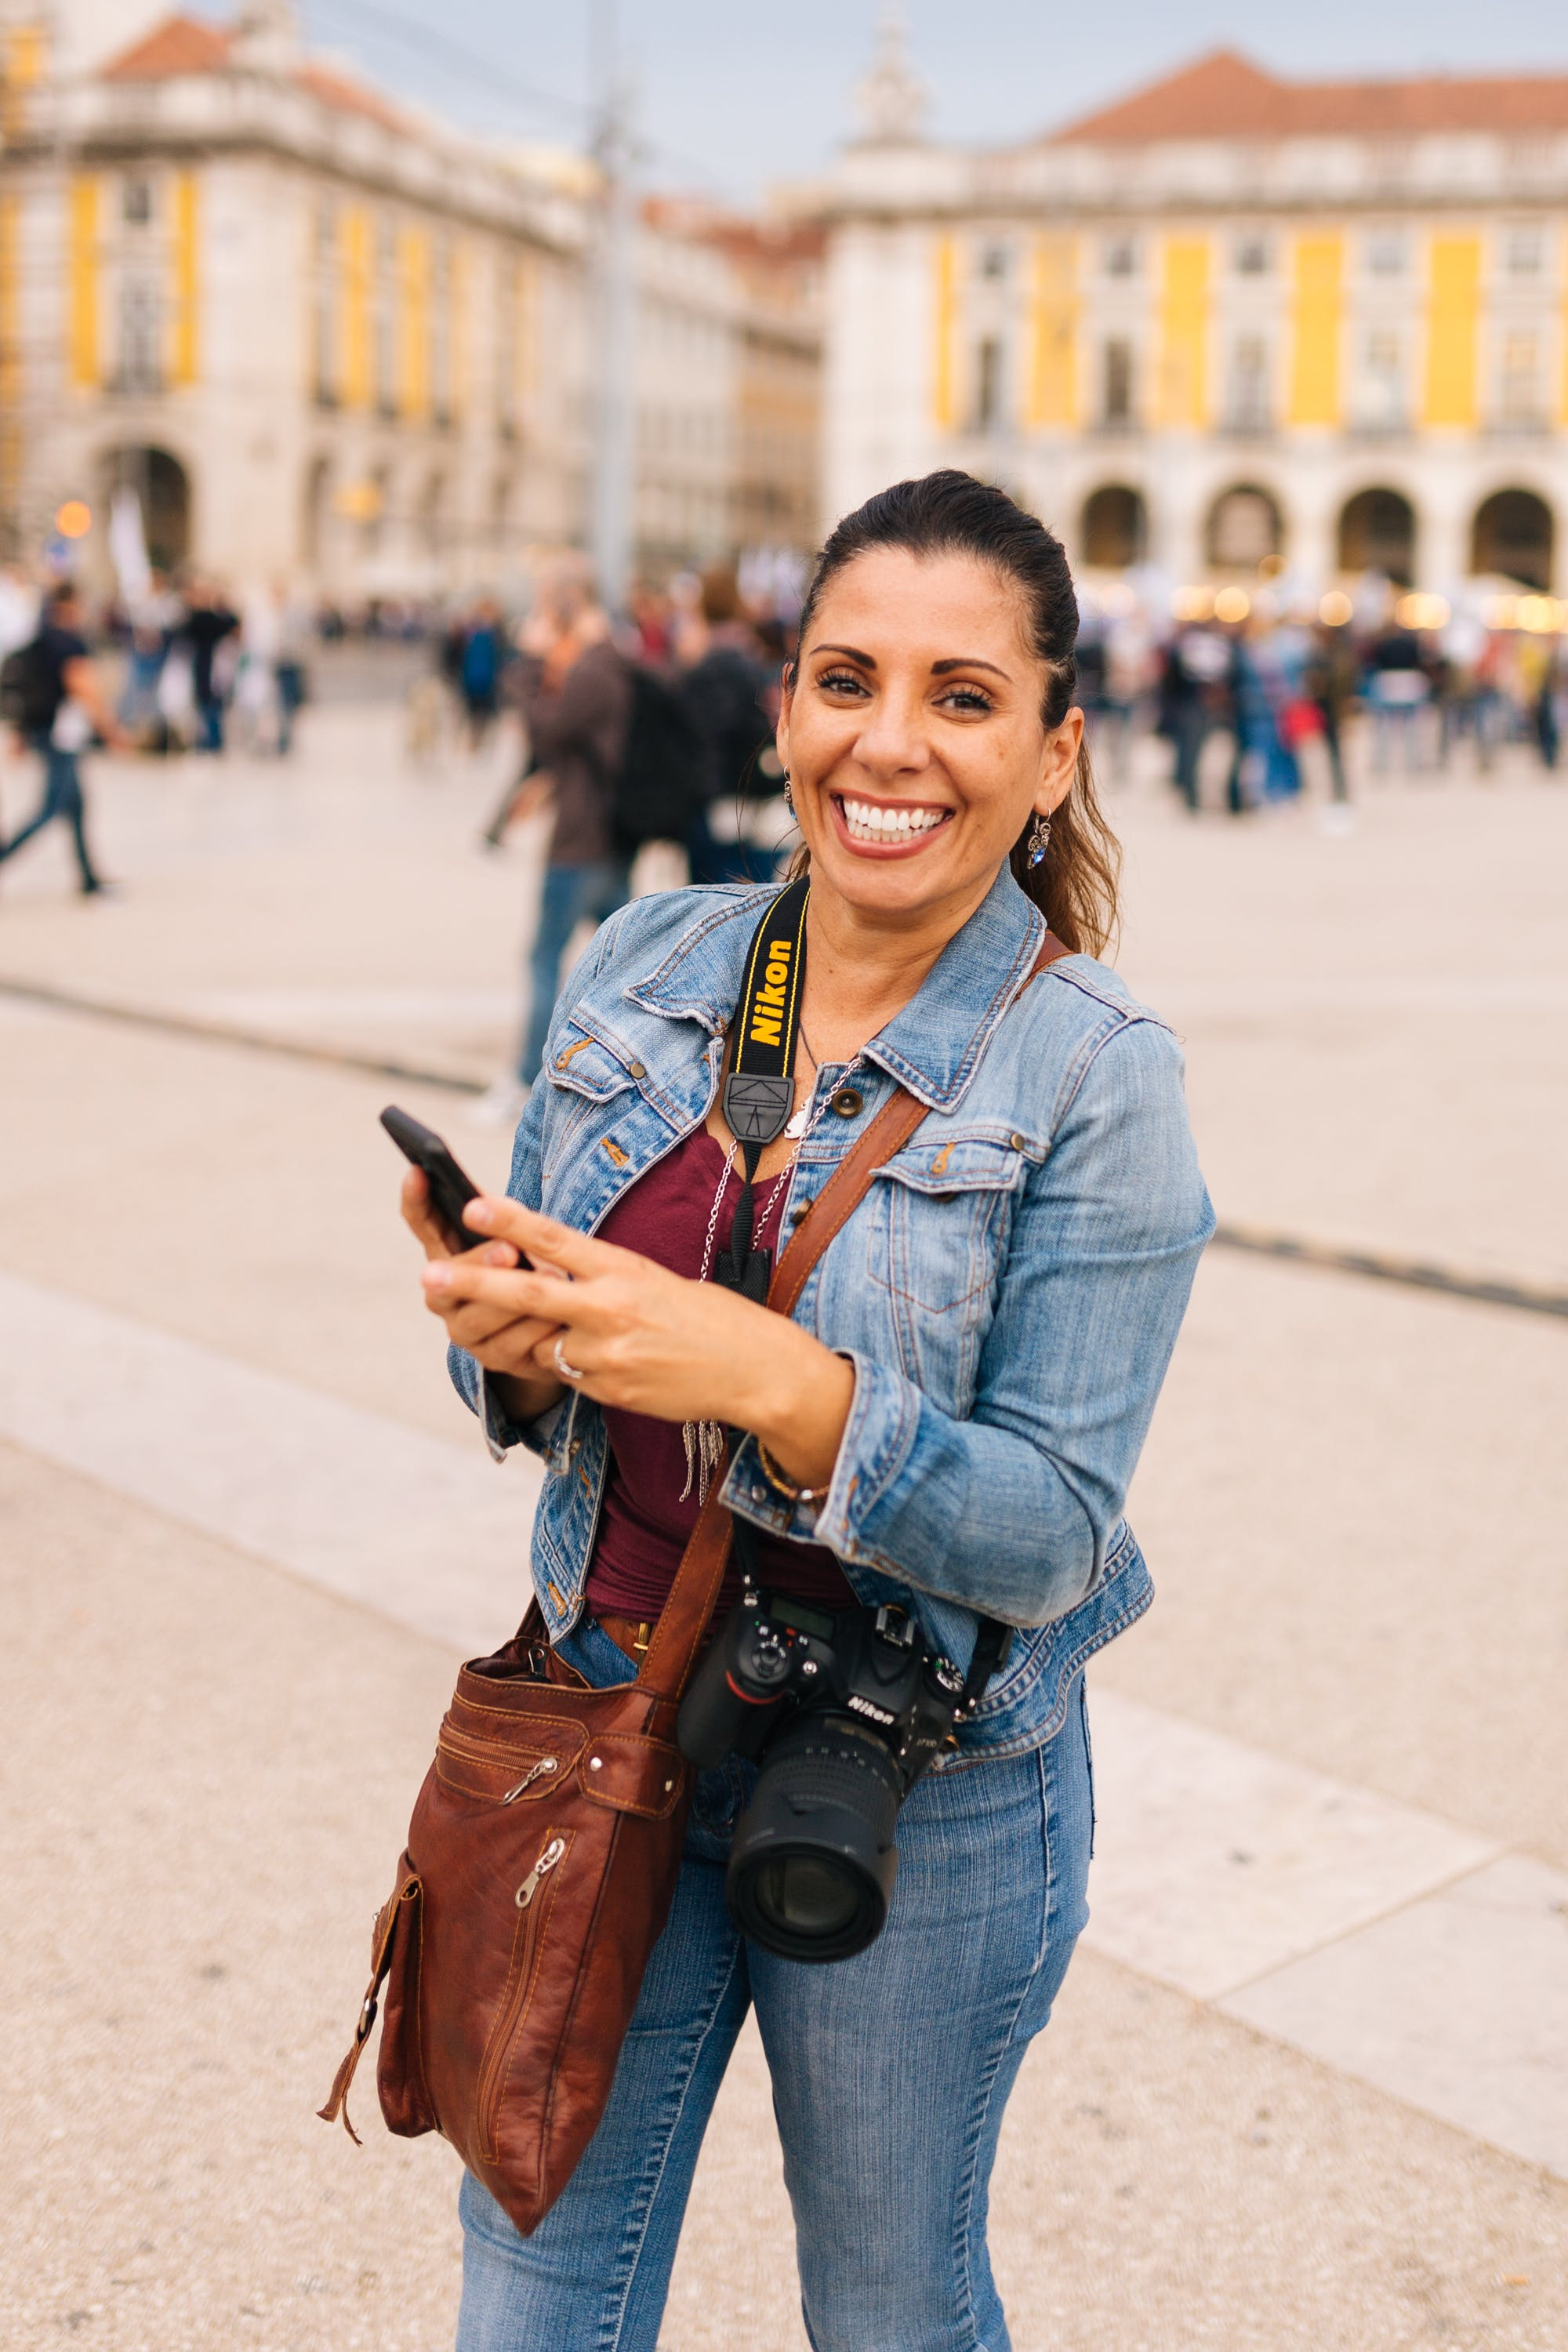 Smiling Woman Holding Smartphone Selective Focus Photography